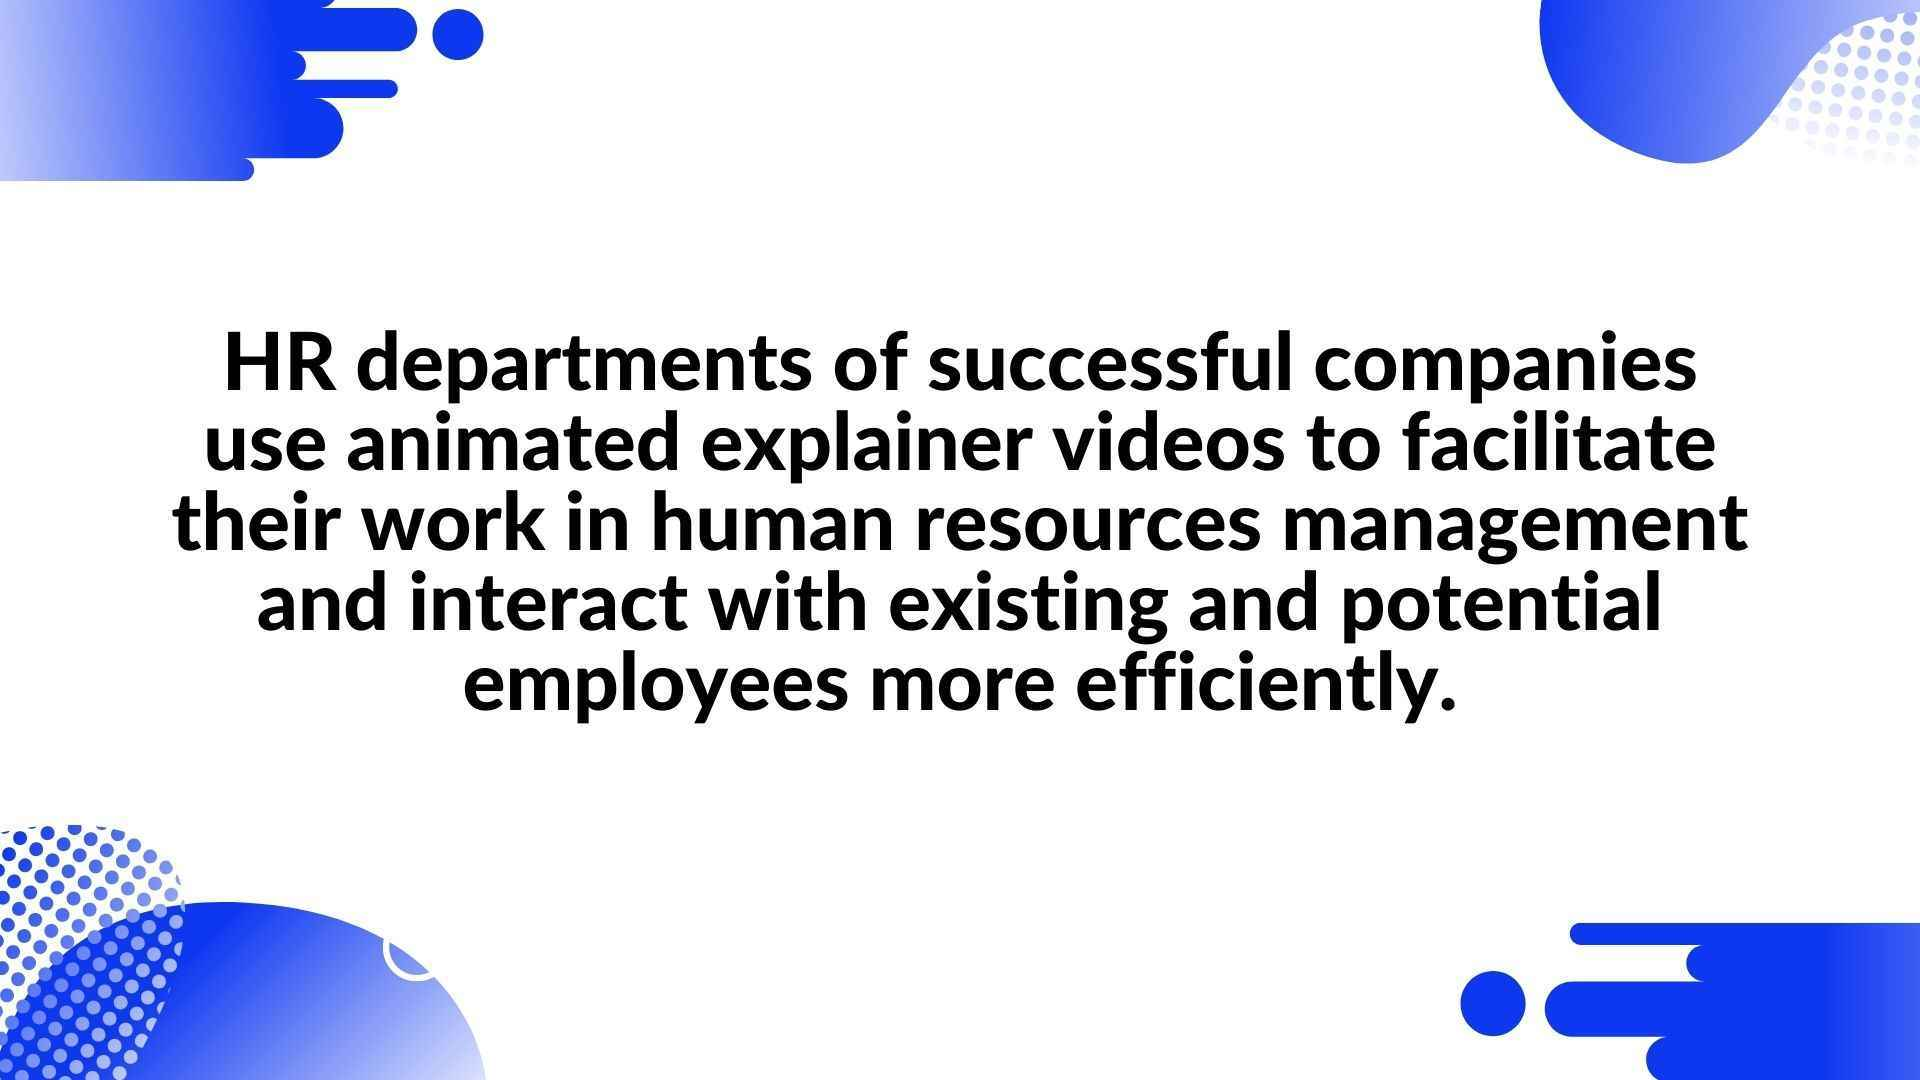 Why do HR departments use animated video?